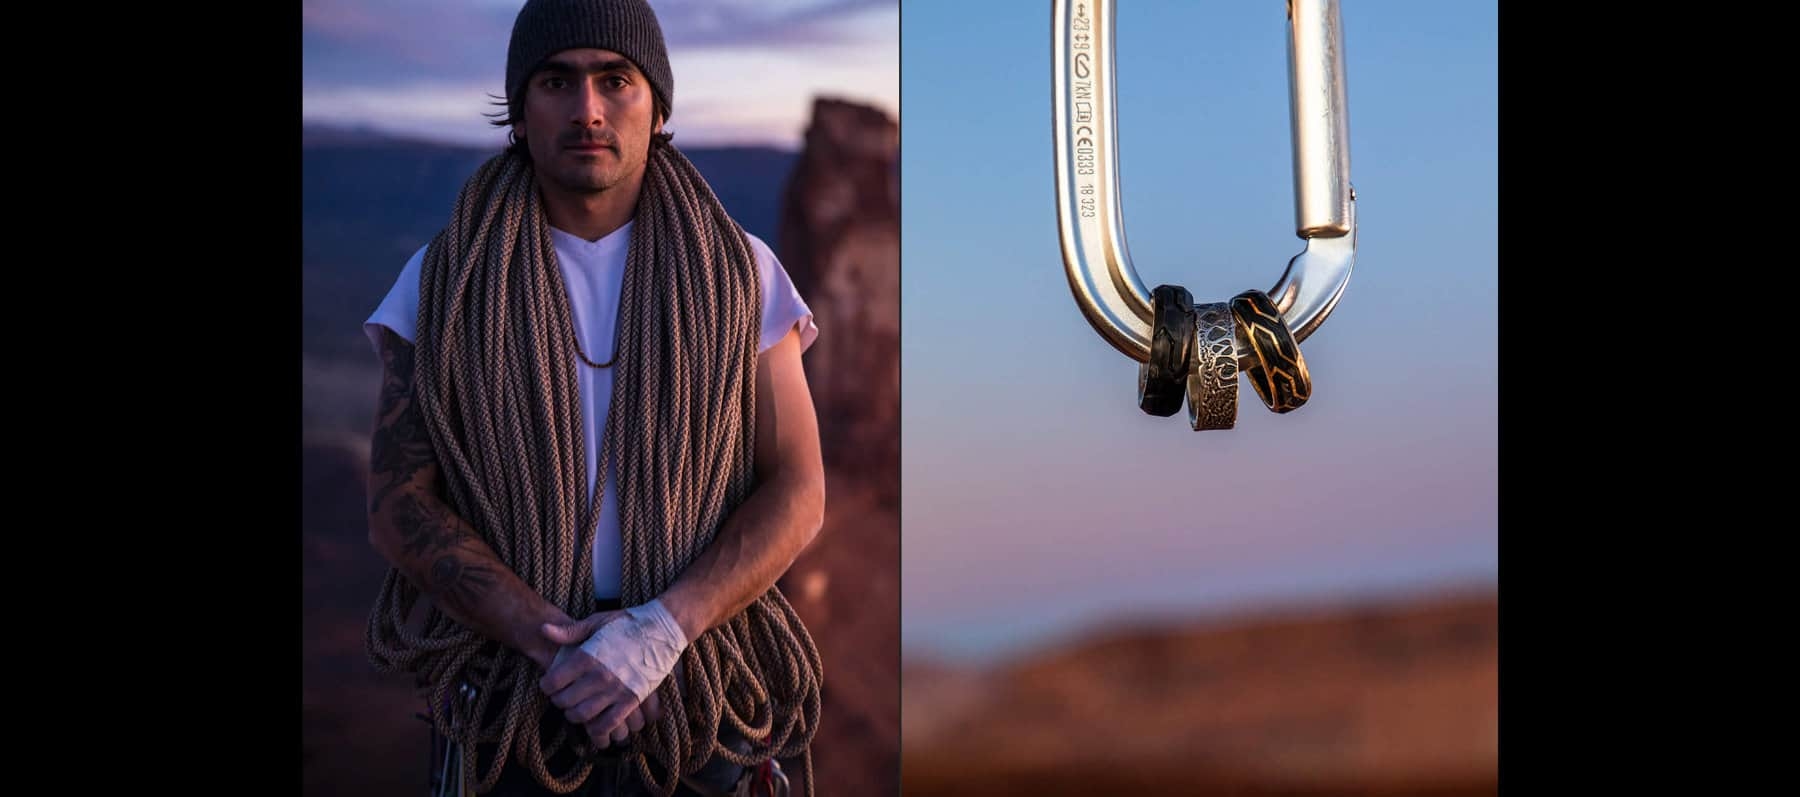 A carousel shows eight color images featuring director/photographer Jimmy Chin and pro climber Sam Elias wearing David Yurman men's jewelry in Utah's Moab desert. Several of the images show them holding rope, standing or climbing canyons. Two images in the slideshow feature David Yurman men's jewelry shot in the desert landscape.